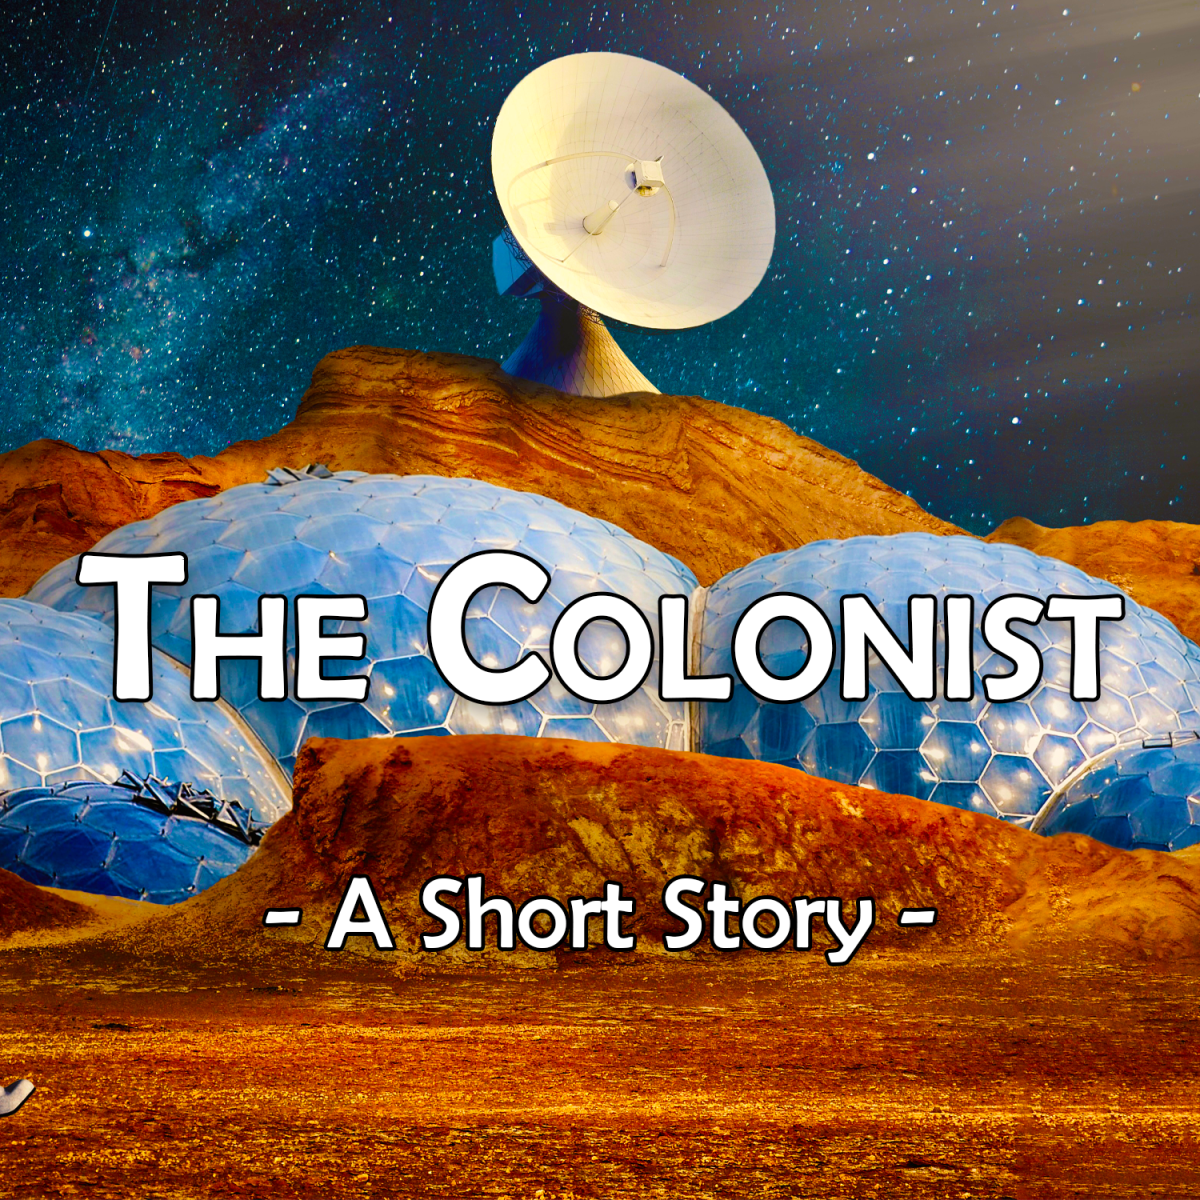 The Colonist by Jennifer Wilber